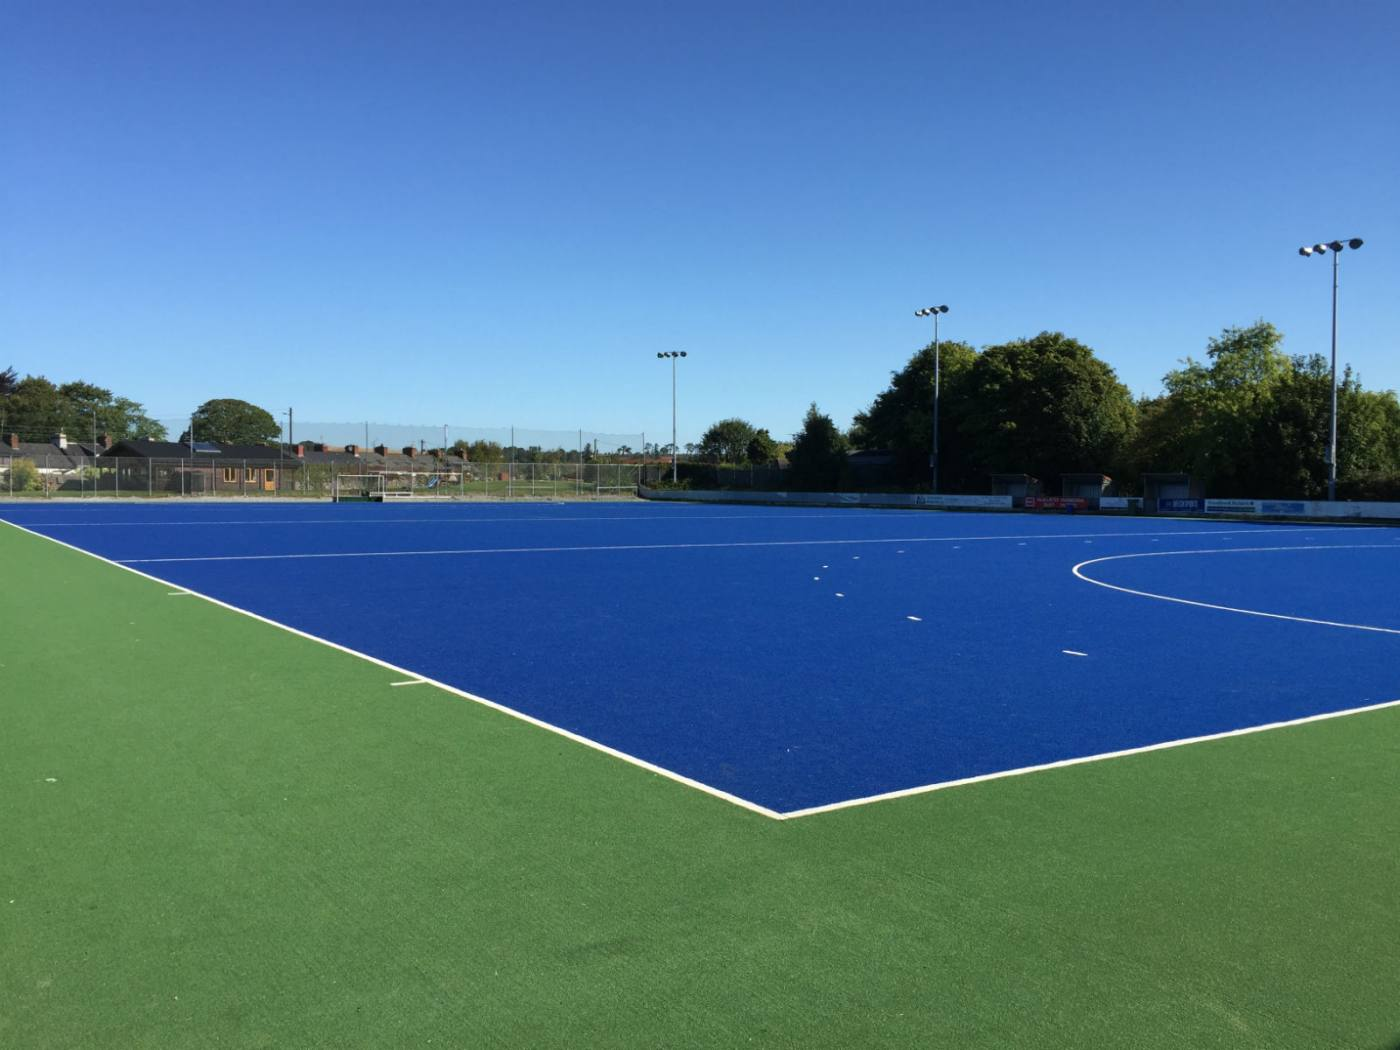 Artificial grass hockey pitch at Midleton College, Cork